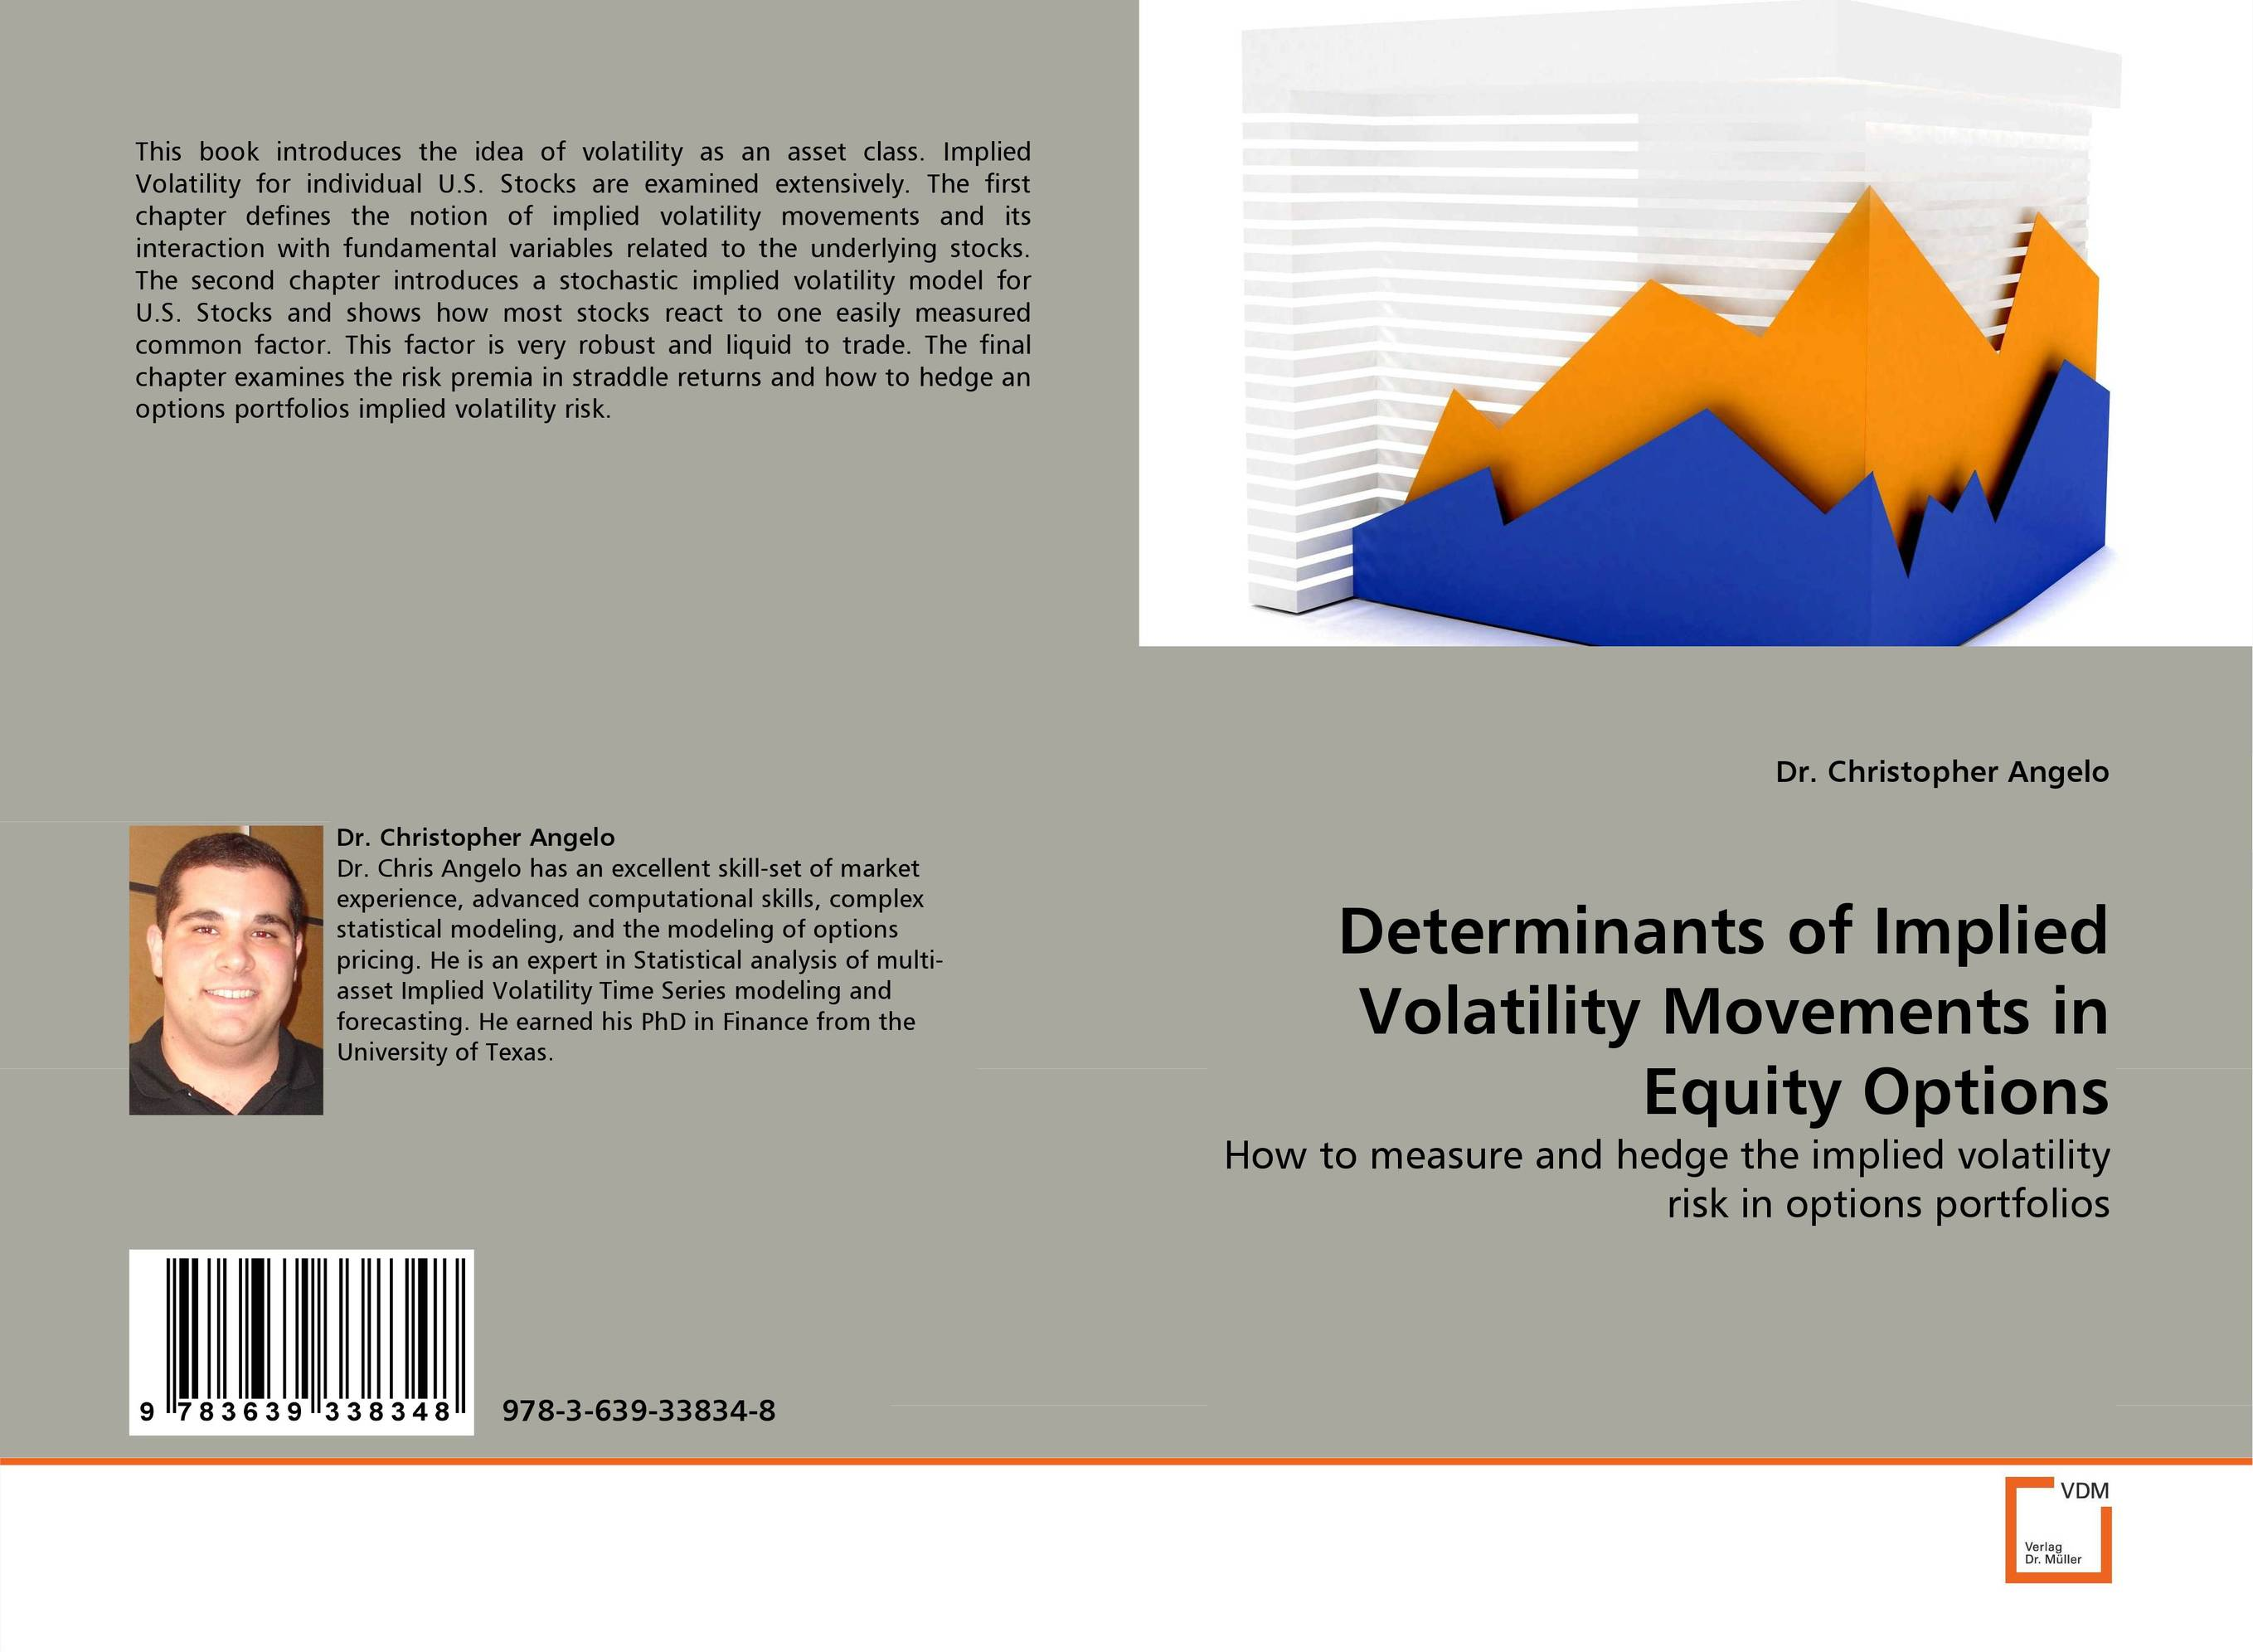 Determinants of Implied Volatility Movements in Equity Options